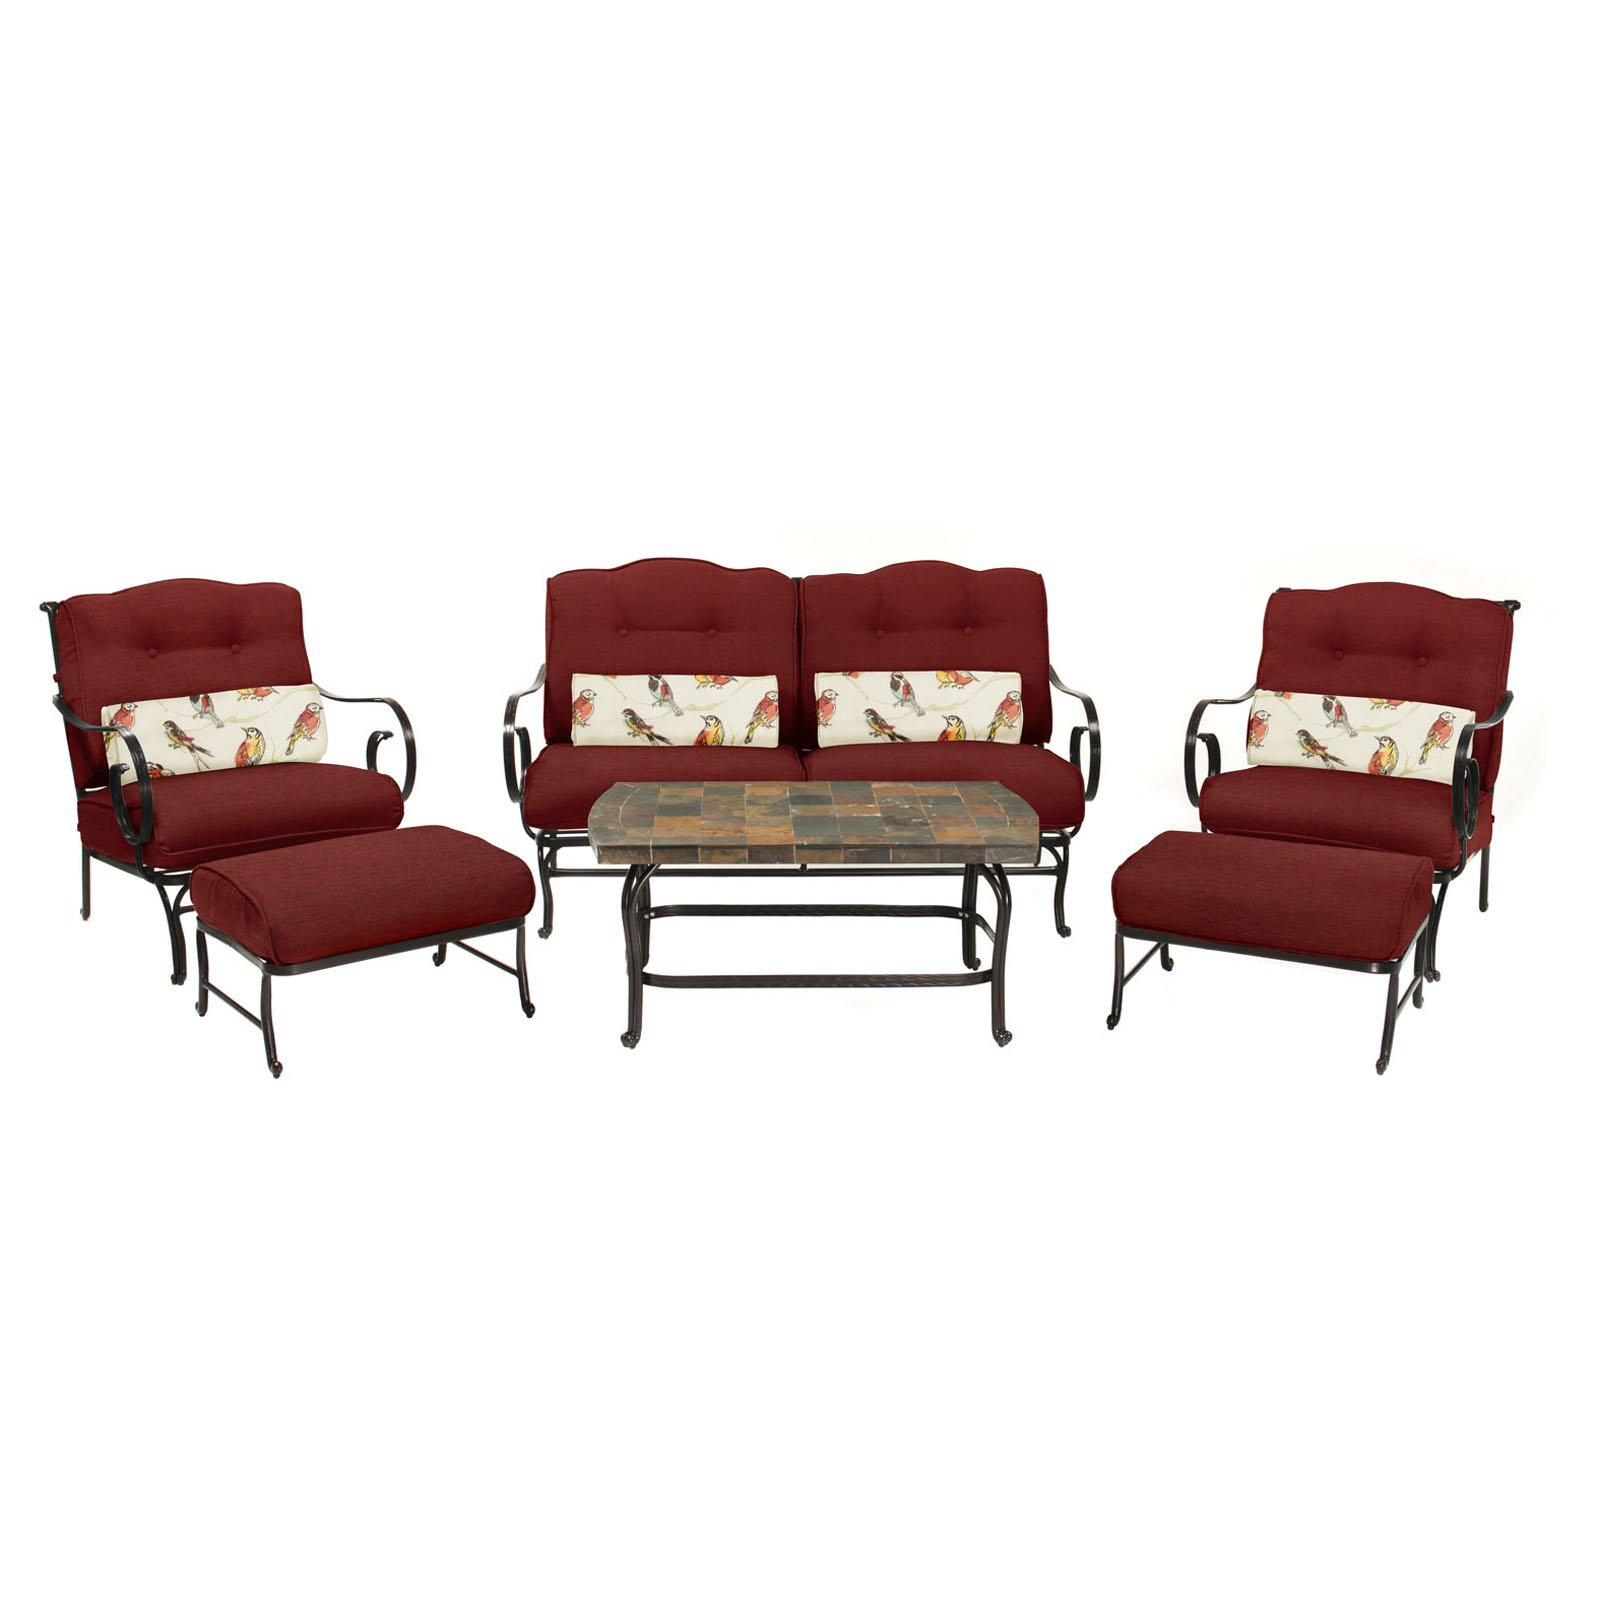 6-Piece Patio Set with Stone-Top Coffee Table